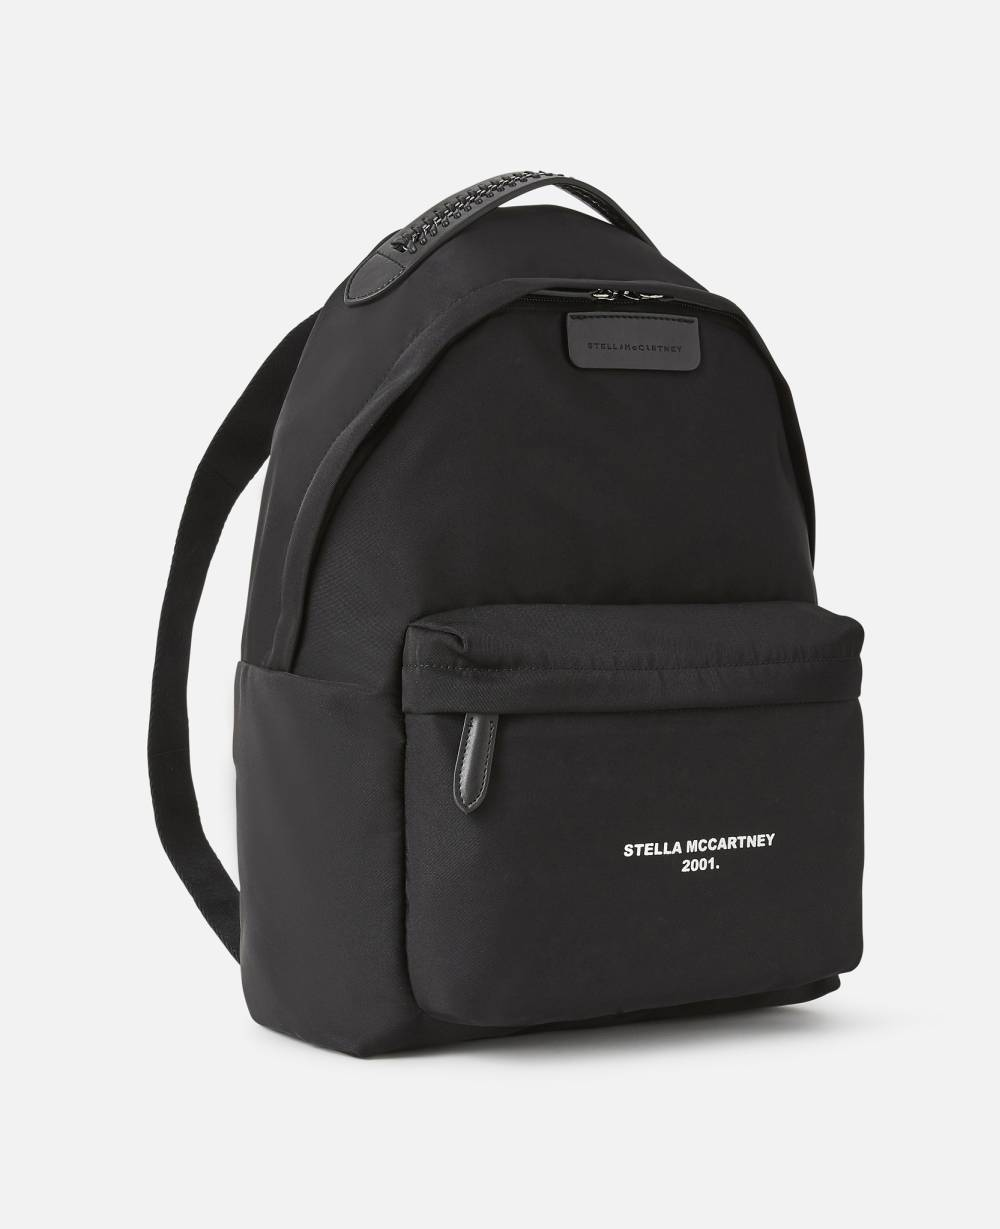 stella mccartney vegan leather backpack